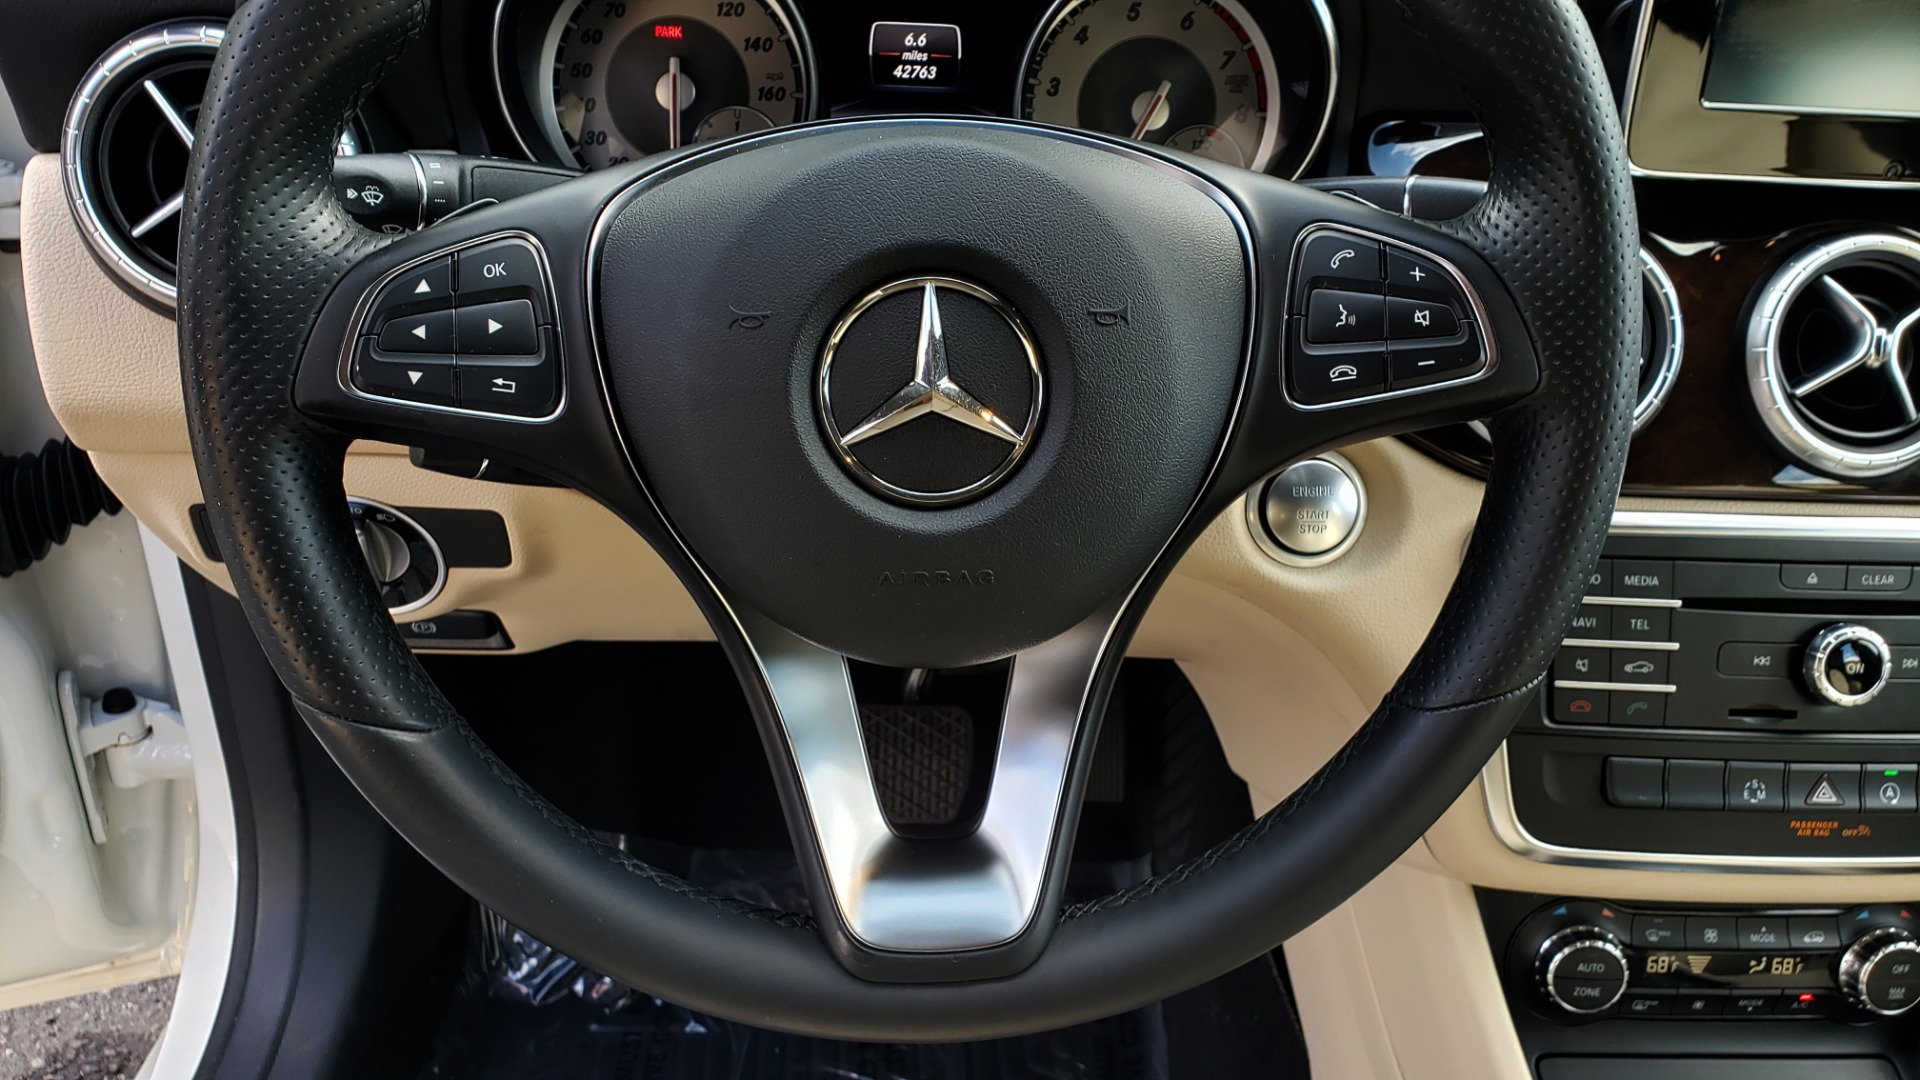 Used 2015 Mercedes-Benz CLA-Class CLA250 / FWD / SUNROOF / SPORT SUSP / CAMERA for sale Sold at Formula One Imports in Charlotte NC 28227 34